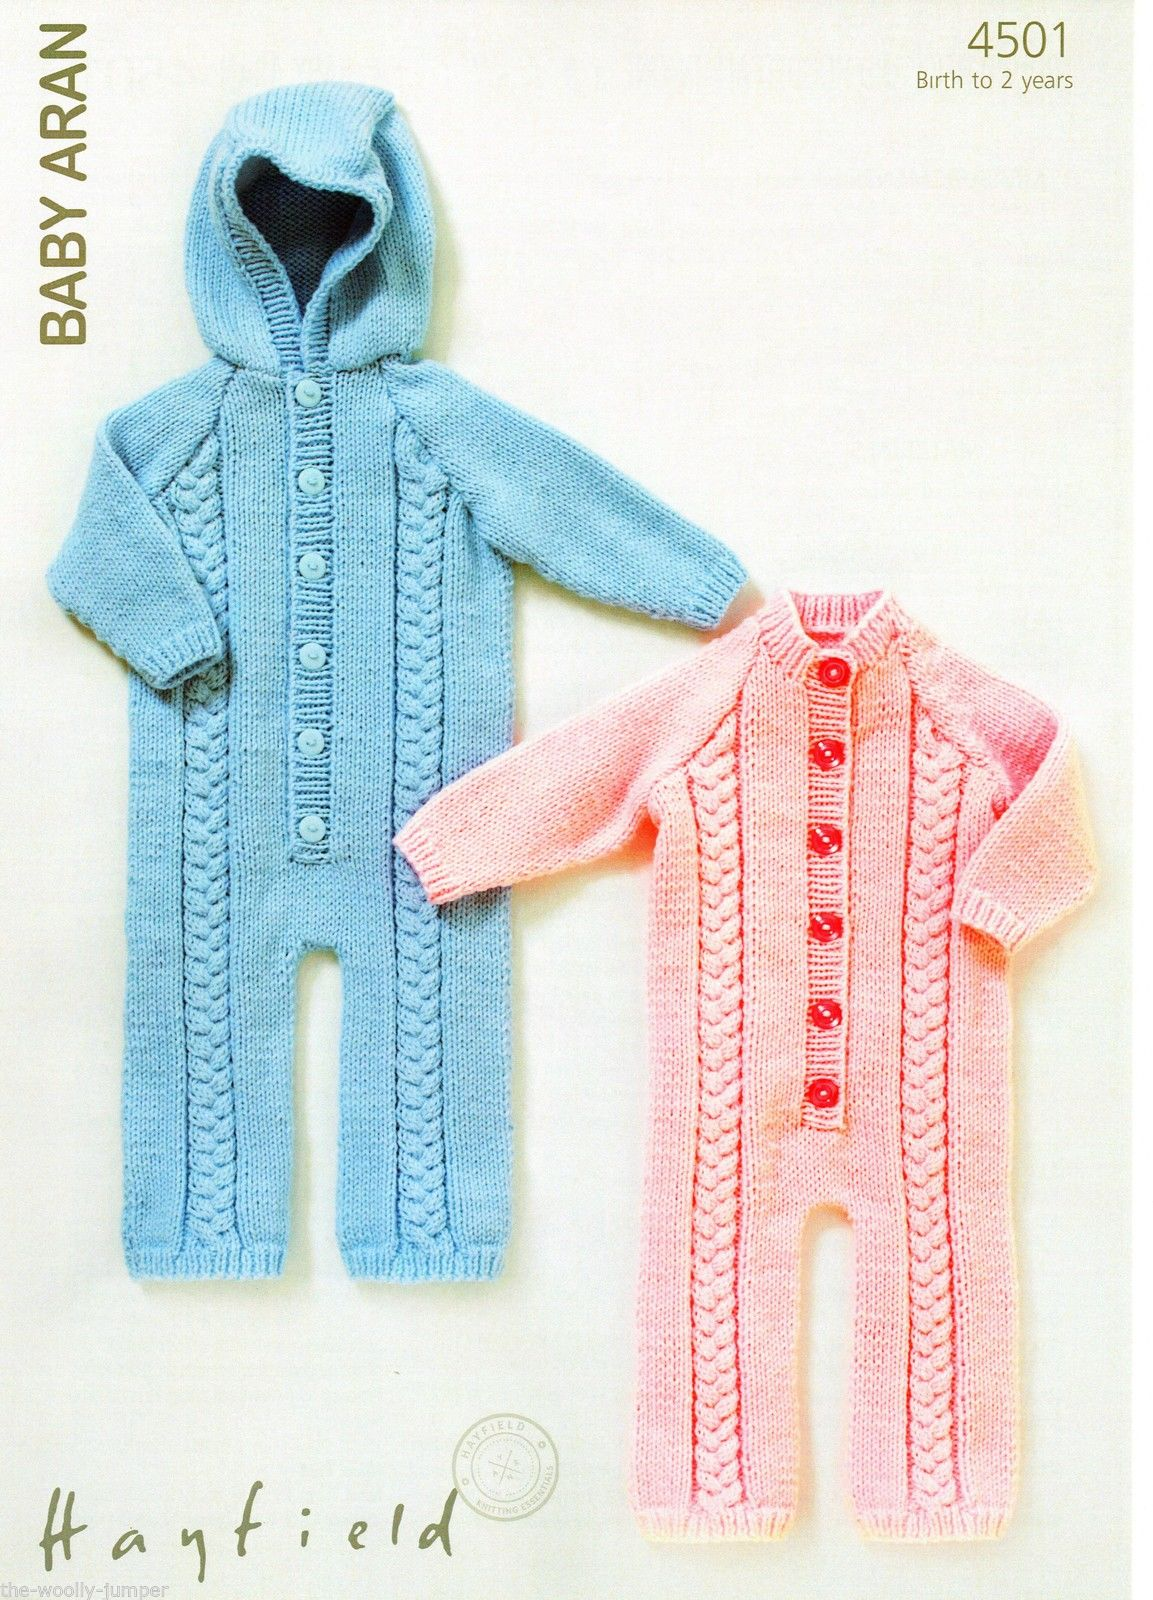 Hayfield Knitting Patterns For Babies : 4501 - HAYFIELD BABY ARAN ALL-IN-ONE ONSEIE KNITTING PATTERN - TO FIT 0 TO 2 ...